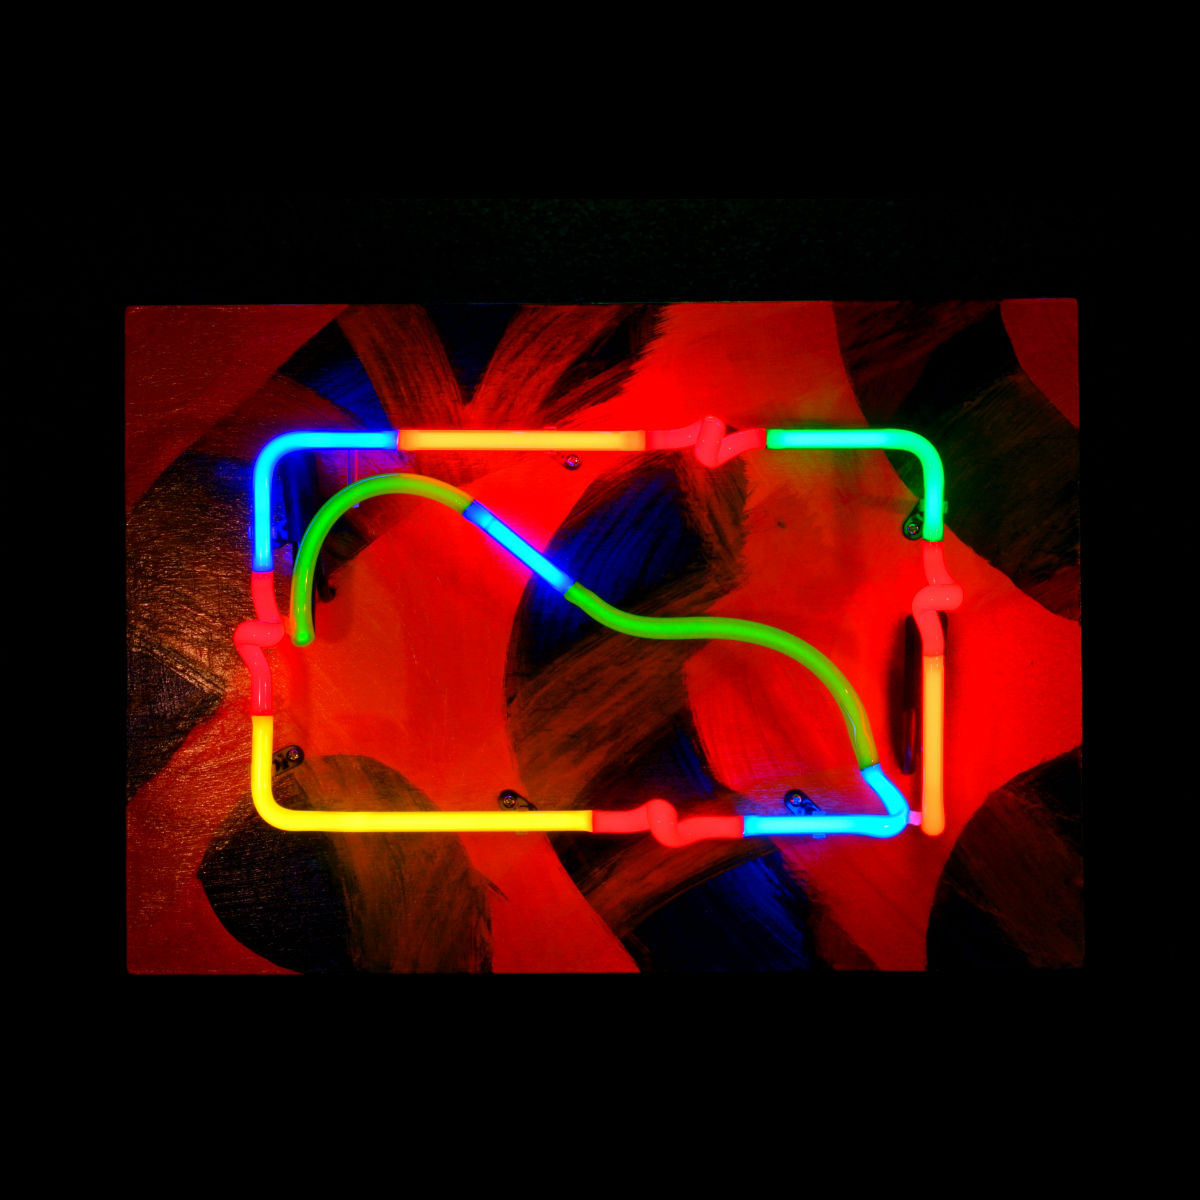 Stunning Custom Hand-blown Neon Light Sculptures by John Barton - BartonNeonMagic.com